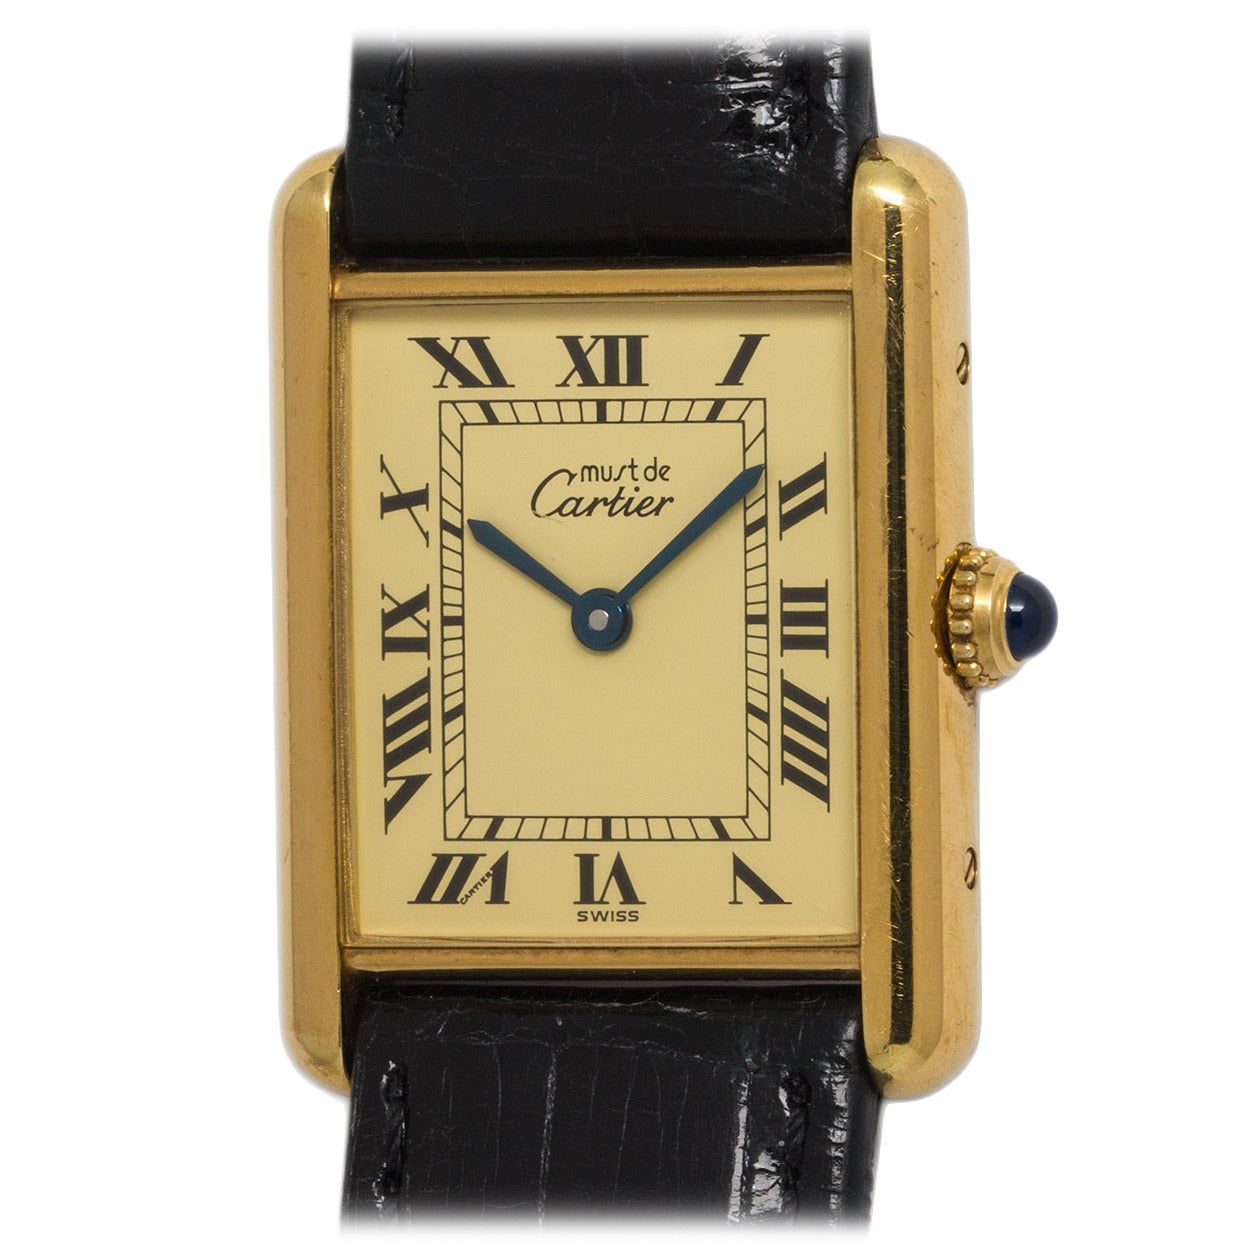 cartier vermeil tank louis must de cartier quartz wristwatch at 1stdibs. Black Bedroom Furniture Sets. Home Design Ideas